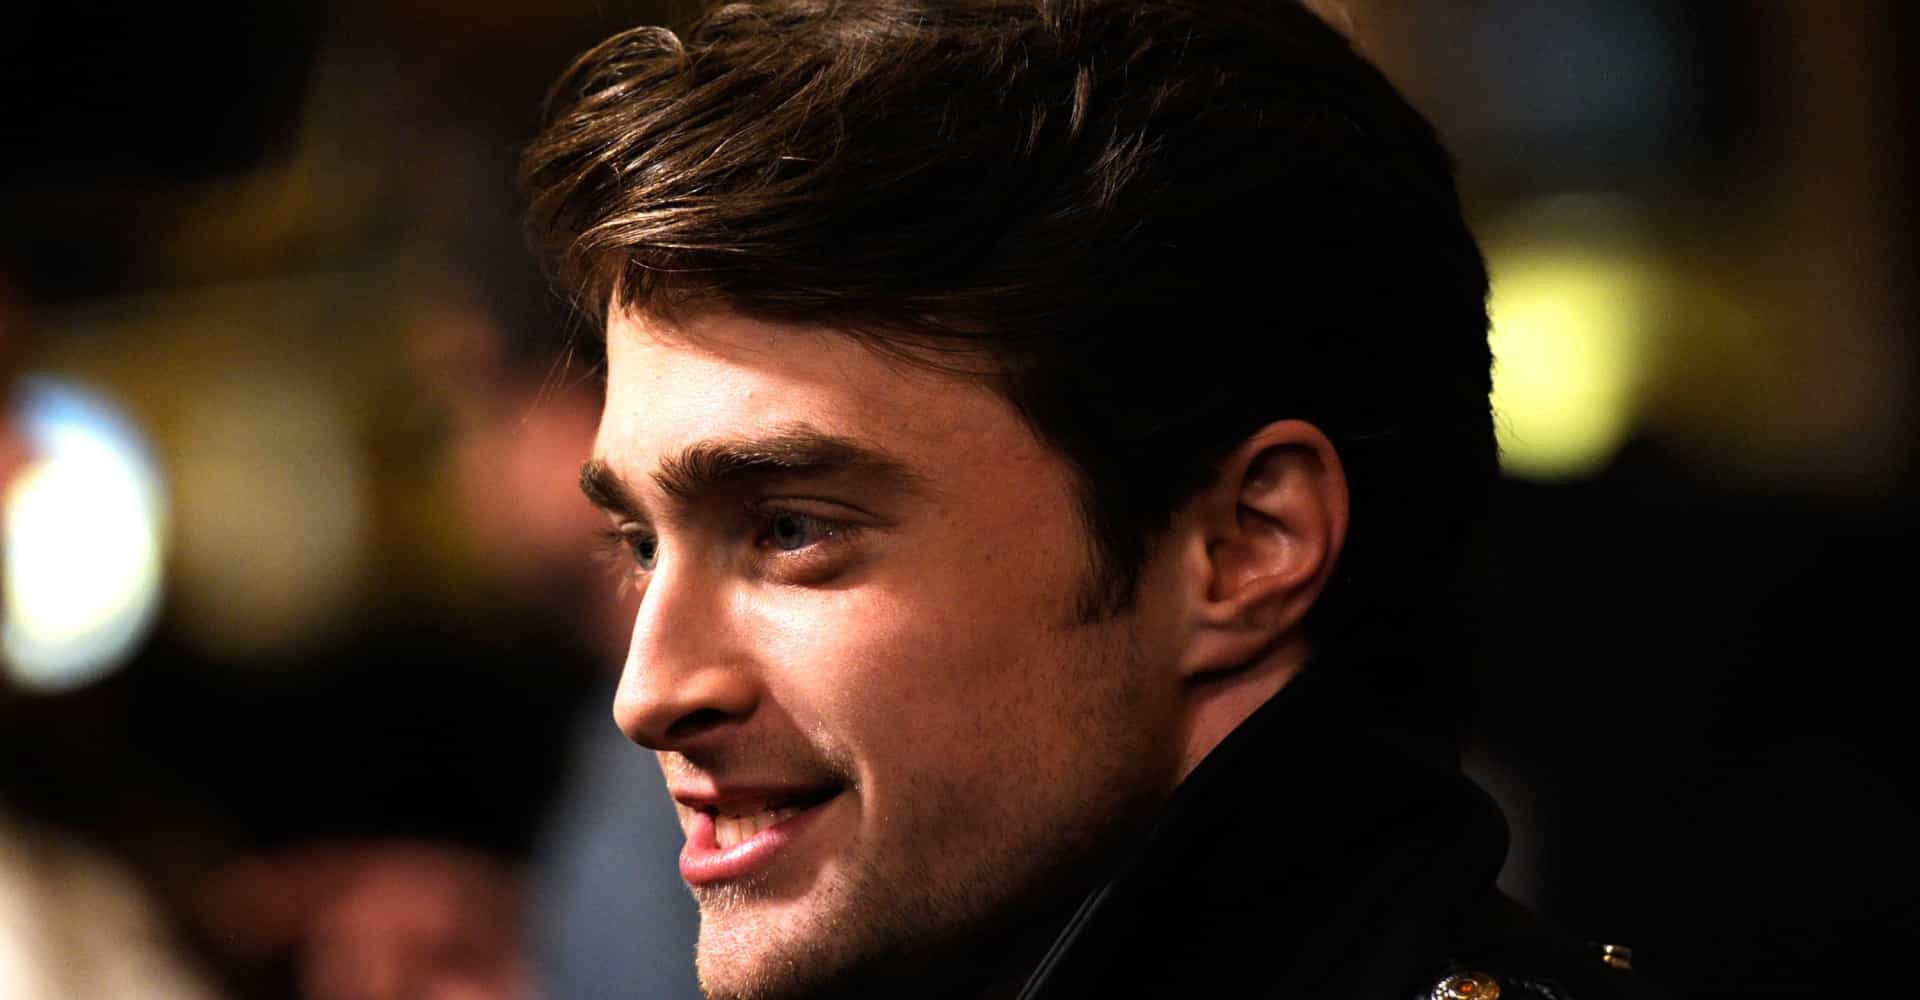 Daniel Radcliffe speaks out about gender inequality in Hollywood